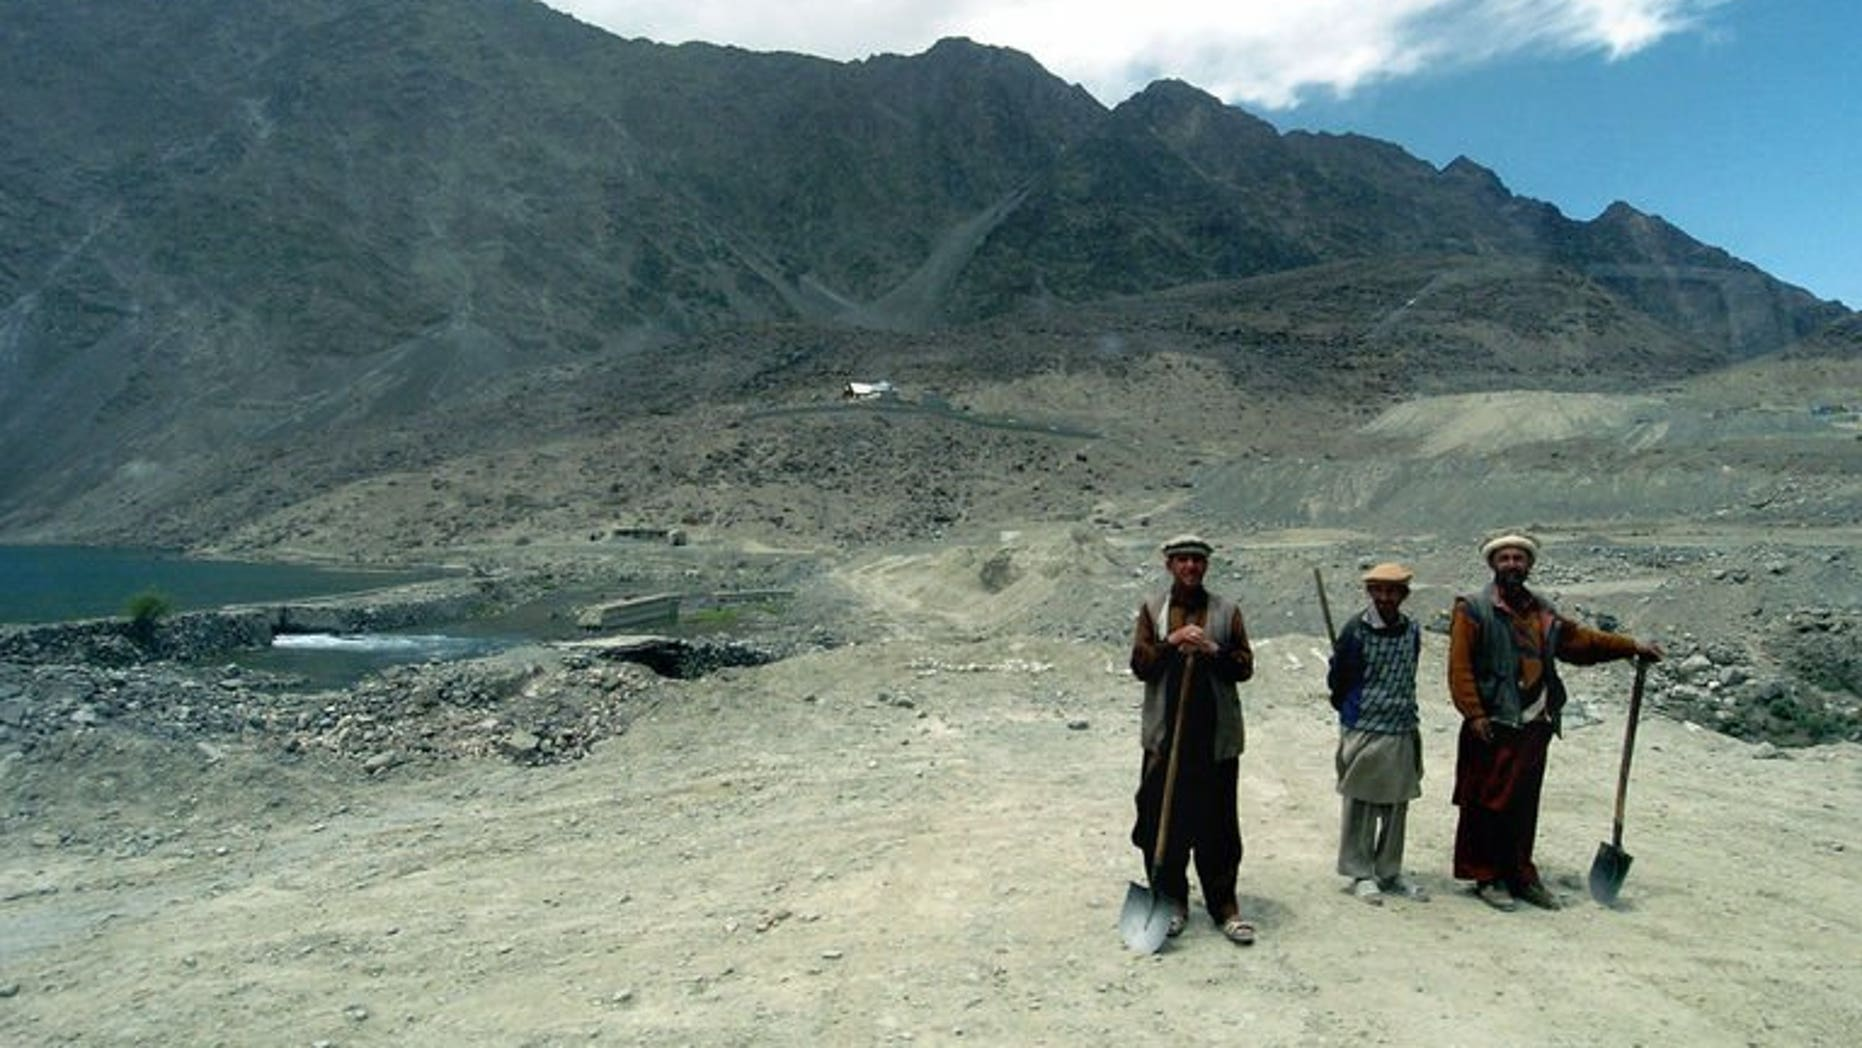 Pakistani labourers near the Karakoram mountain range, on July 13, 2004. A rescue operation is under way for three Spanish climbers who went missing in bad weather in the mountains of northern Pakistan.